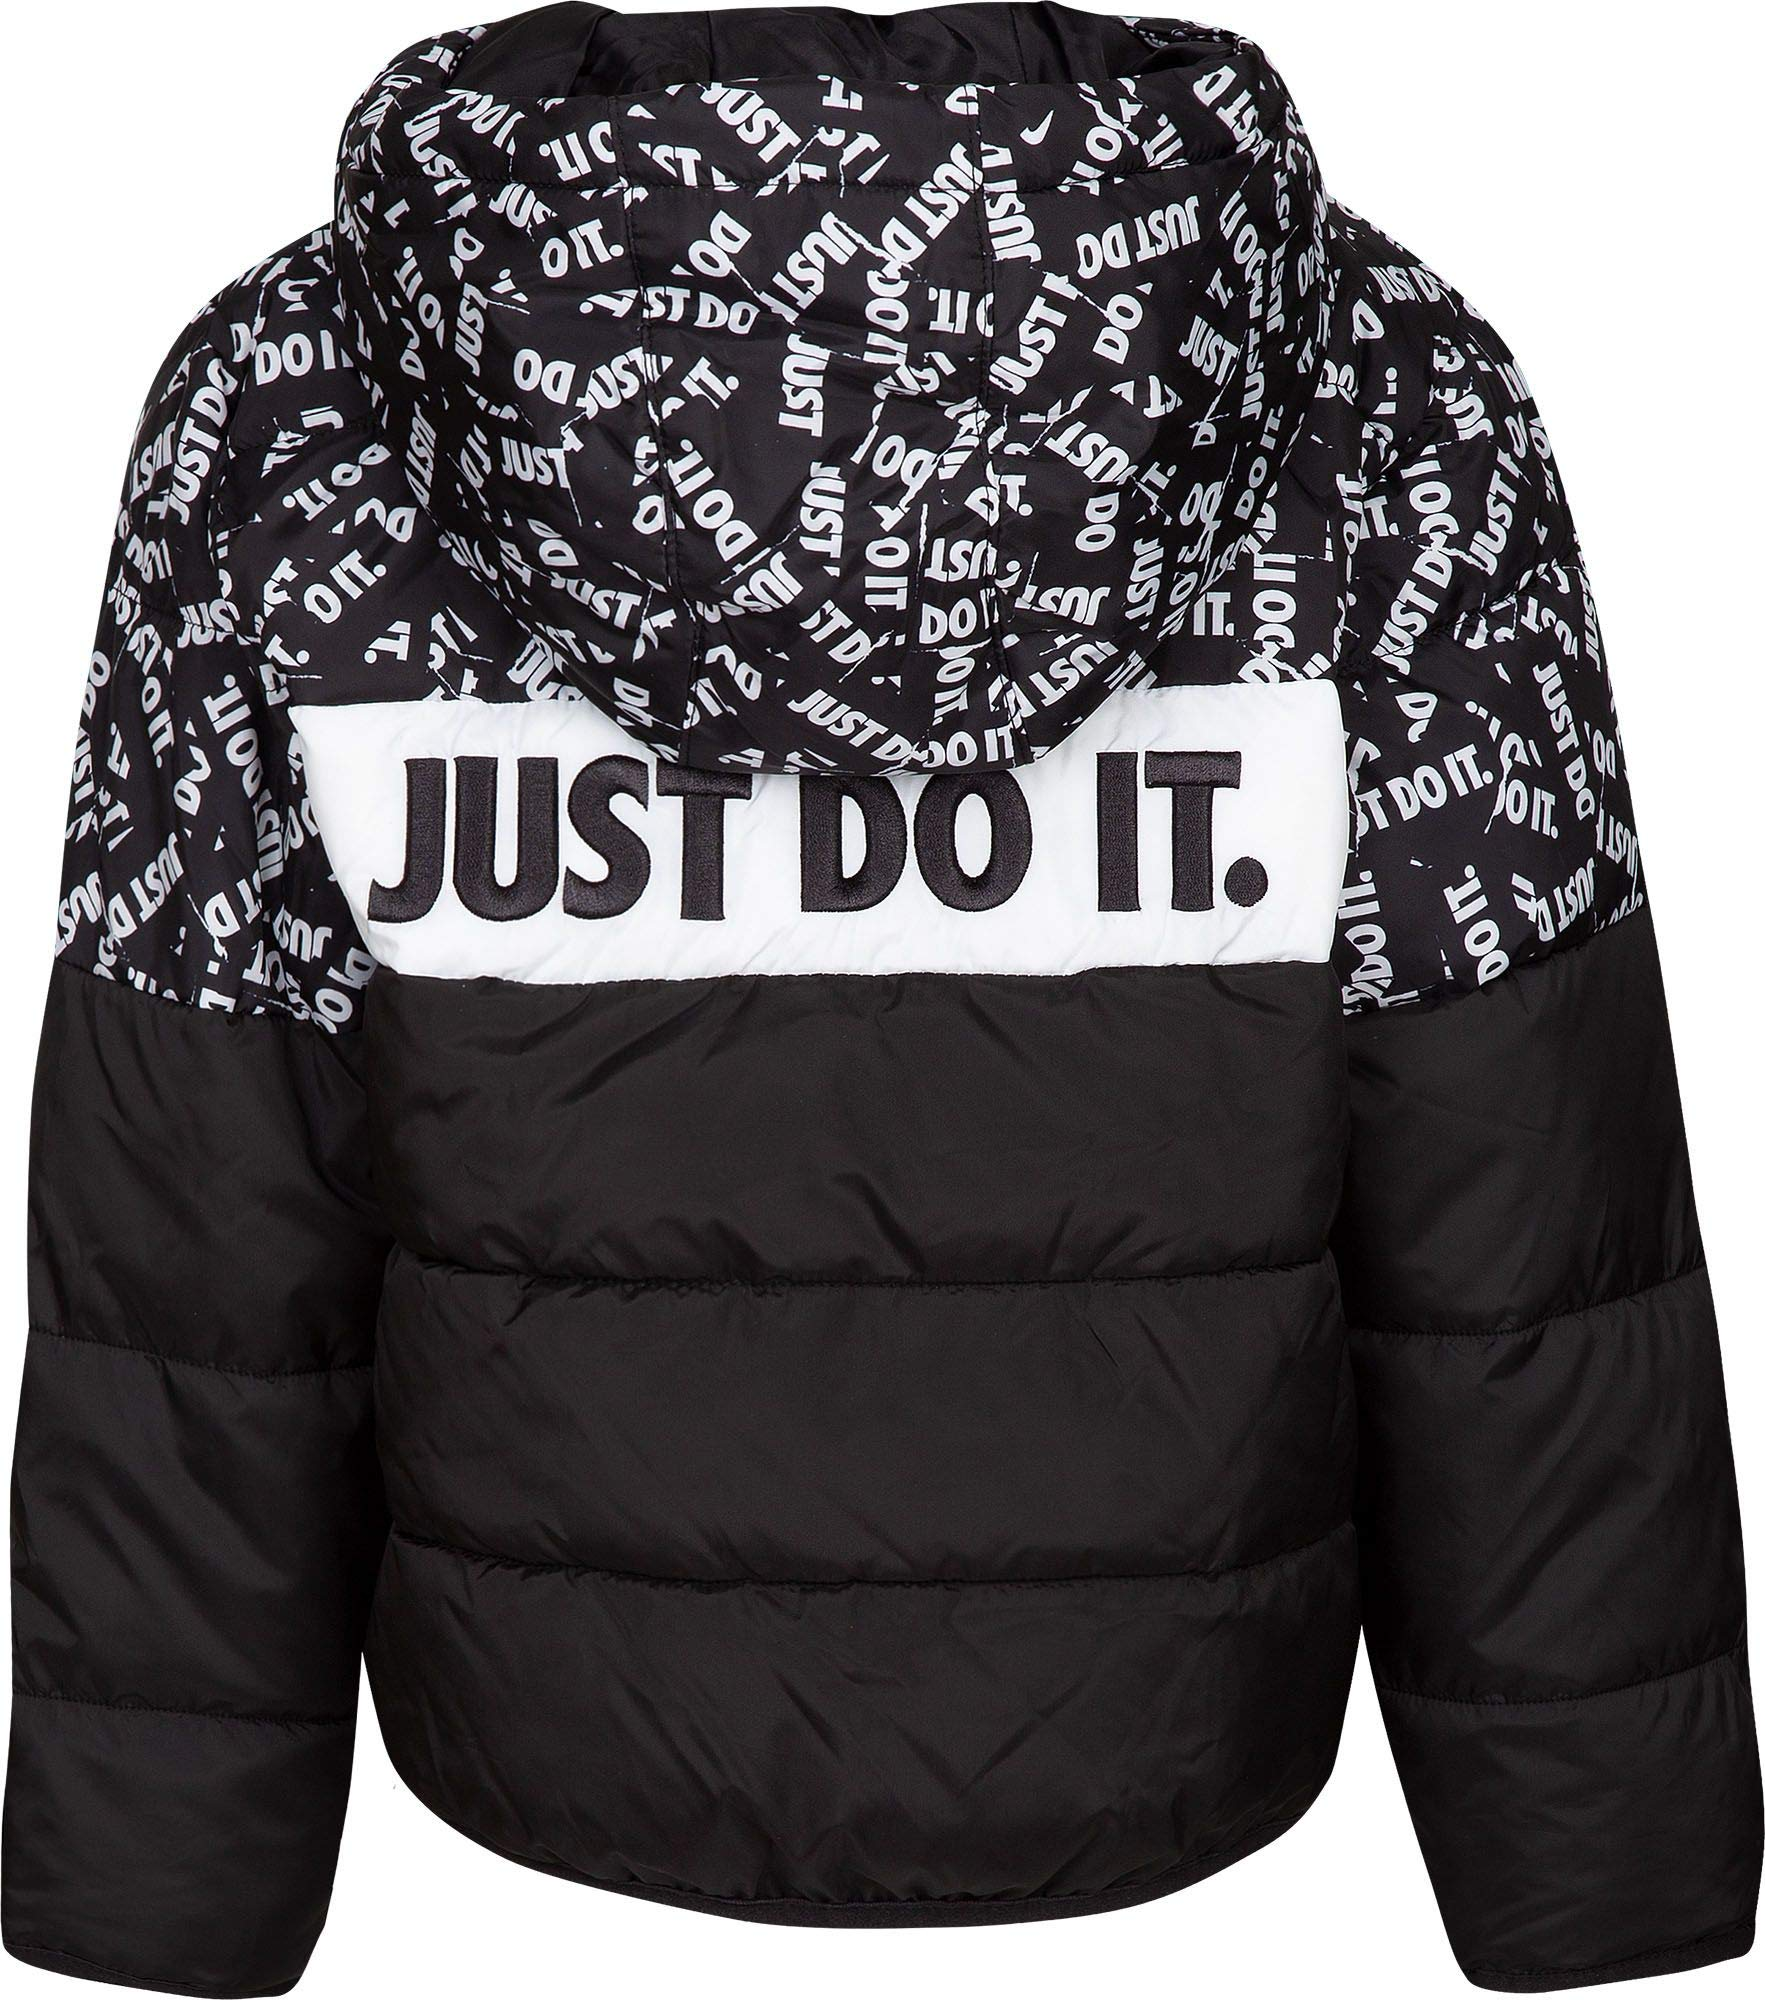 Nike Boy's Polyfill Blocked Insulated Puffer Jacket (Black, 6) by Nike (Image #2)